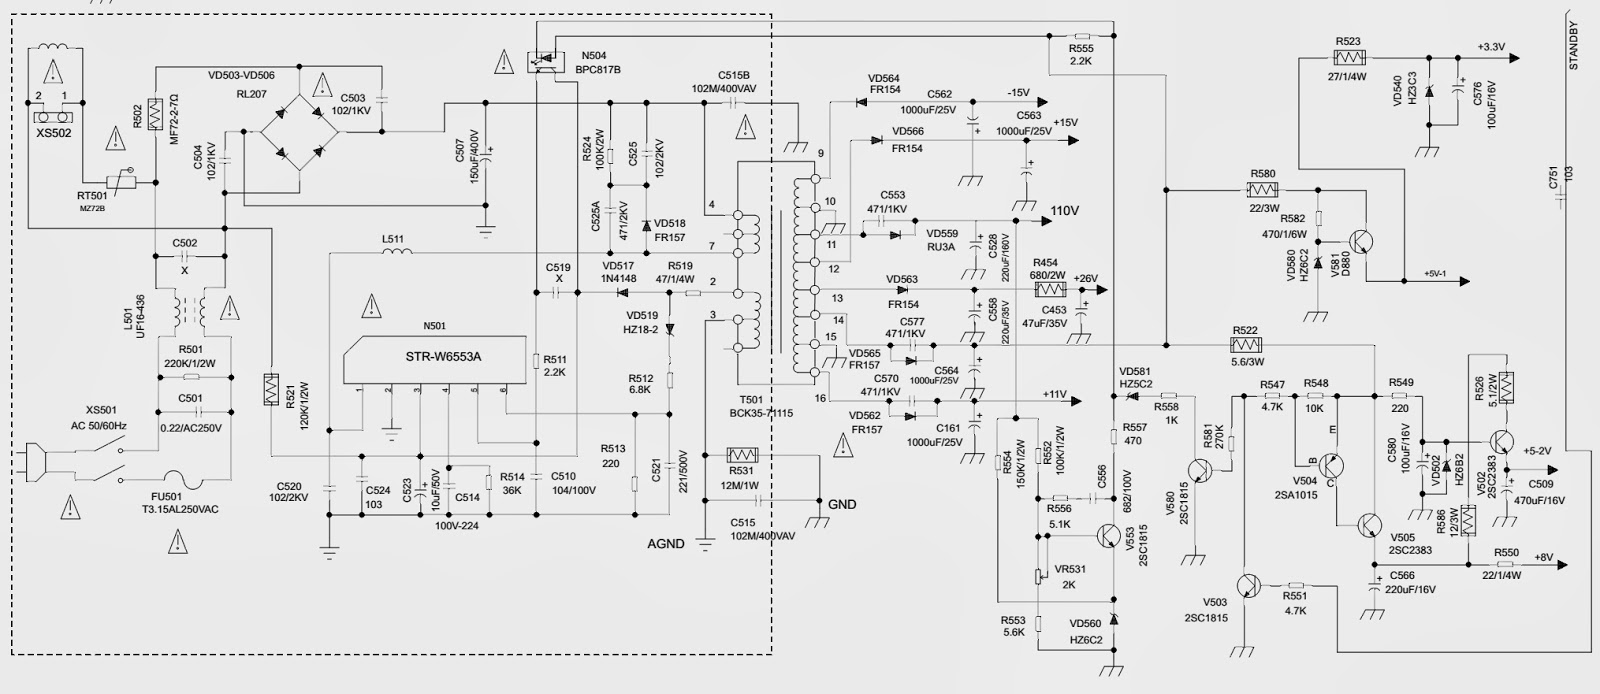 Philco Ph14c Tv Main Power Regulator Section Schematic Diagram Circuit Click On The To Zoom